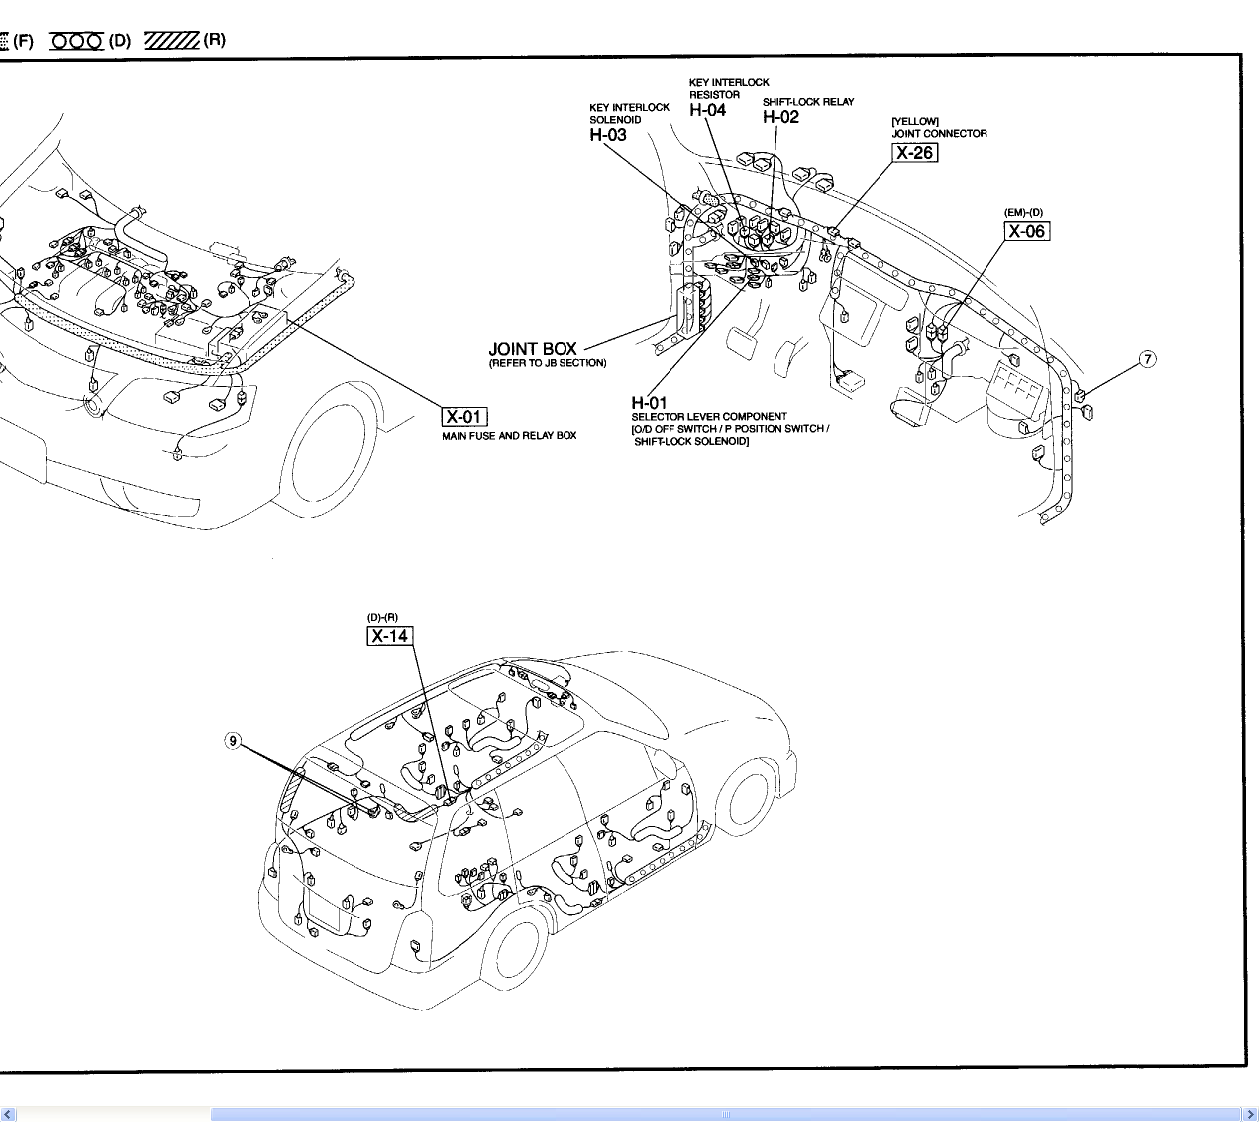 1993 mazda navajo transmission solenoids replacement